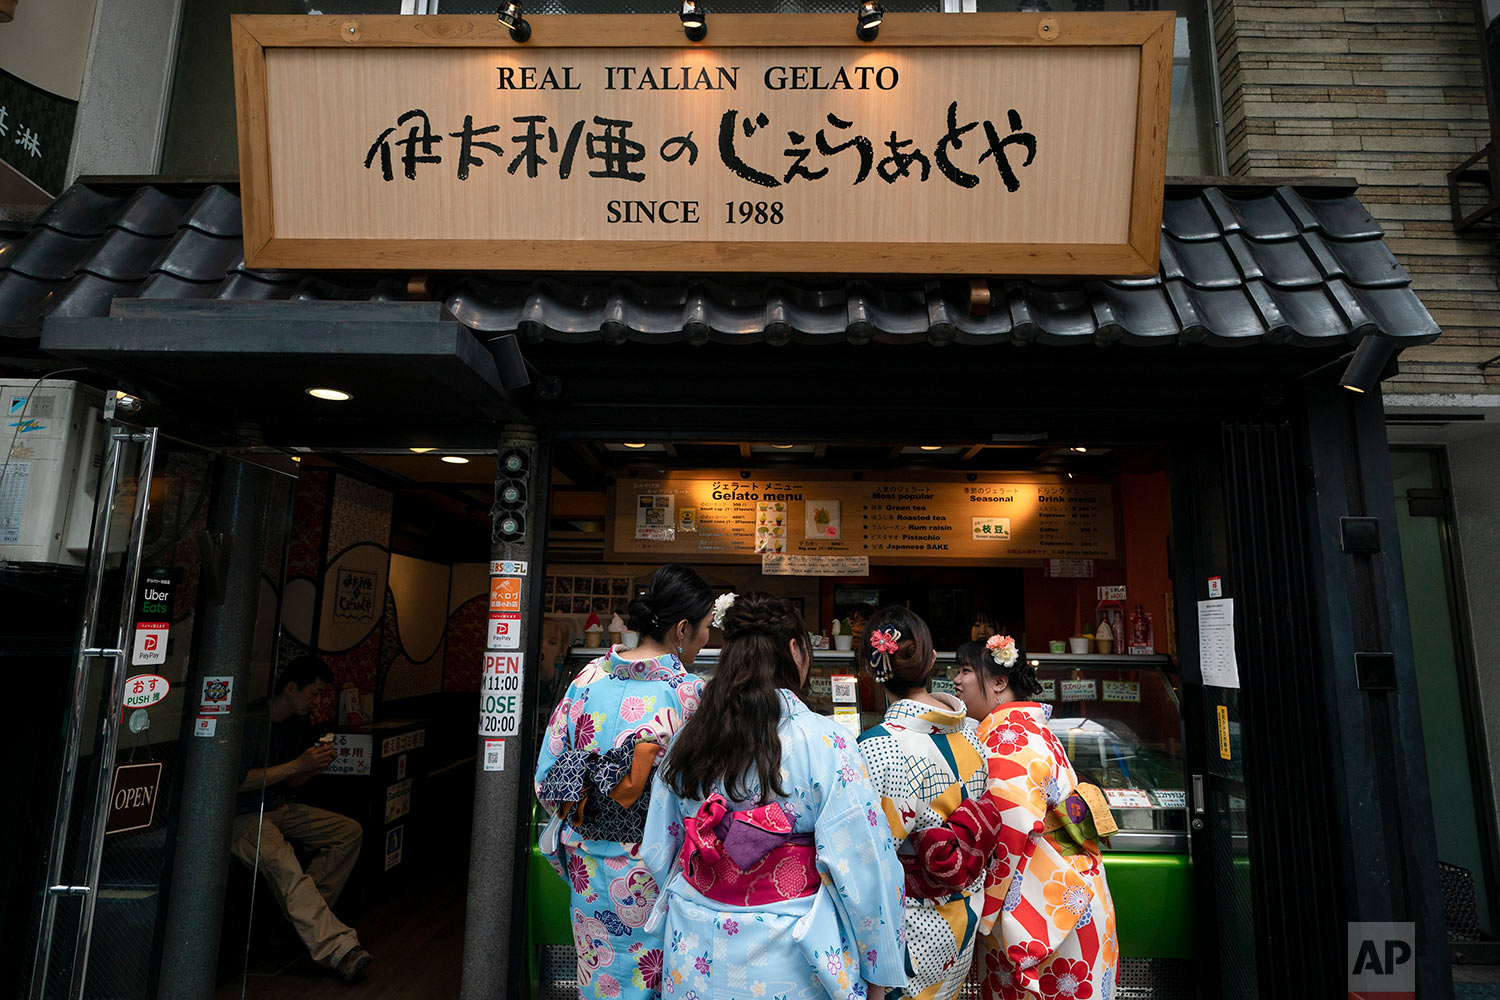 Wearing rental kimono, tourists visiting from Hong Kong order gelato after their visit to Sensoji Temple in the Taito district of Tokyo, June 3, 2019. (AP Photo/Jae C. Hong)